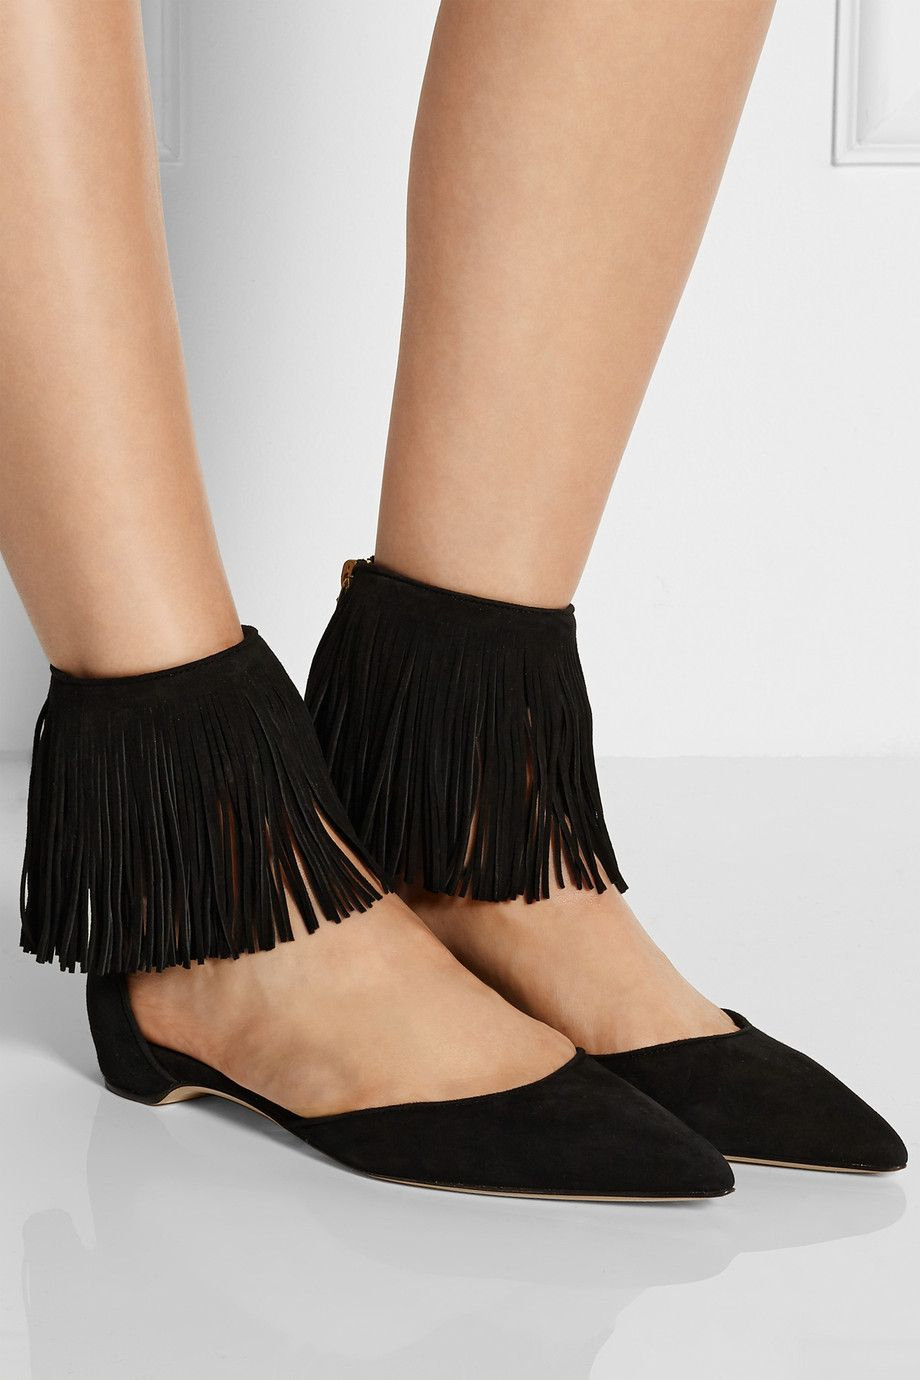 Paul Andrew Suede Fringe Flats outlet wide range of discount codes clearance store lz8u2X8Tq